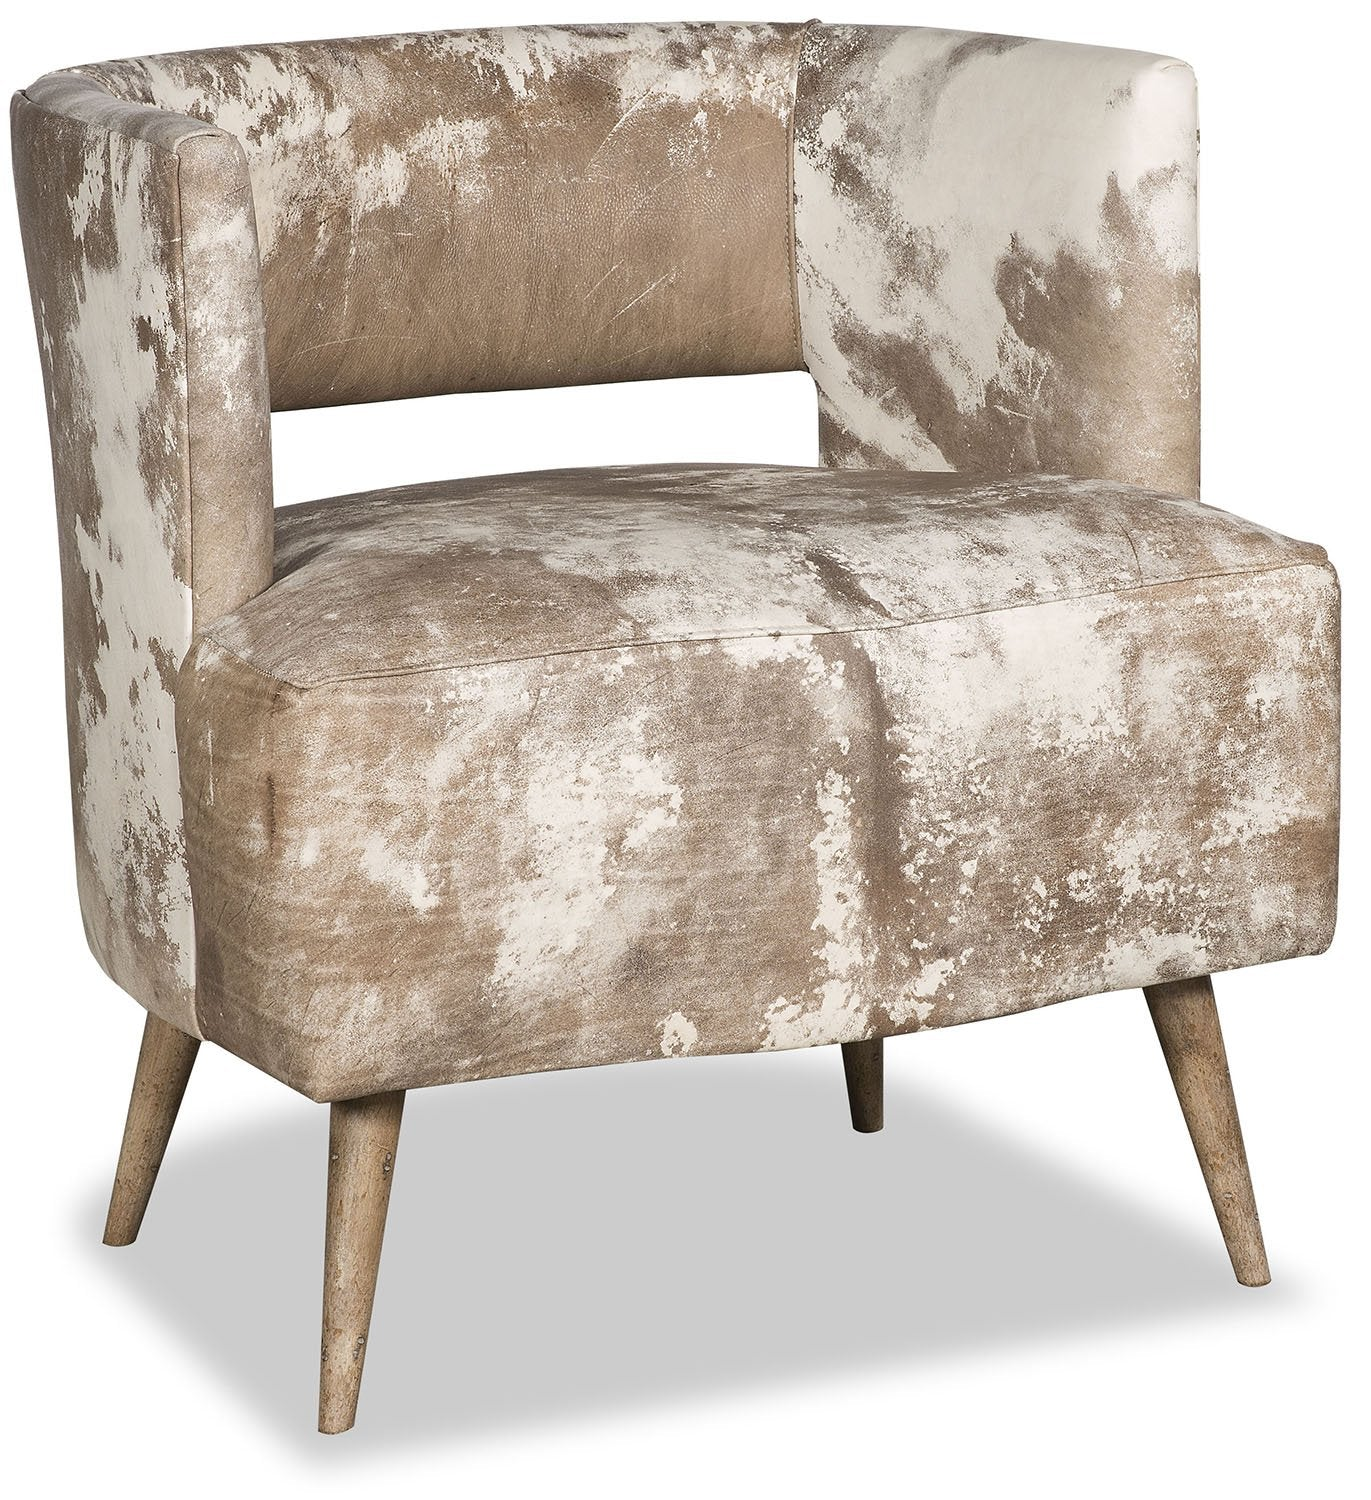 Nida Cowhide Chair - Organic